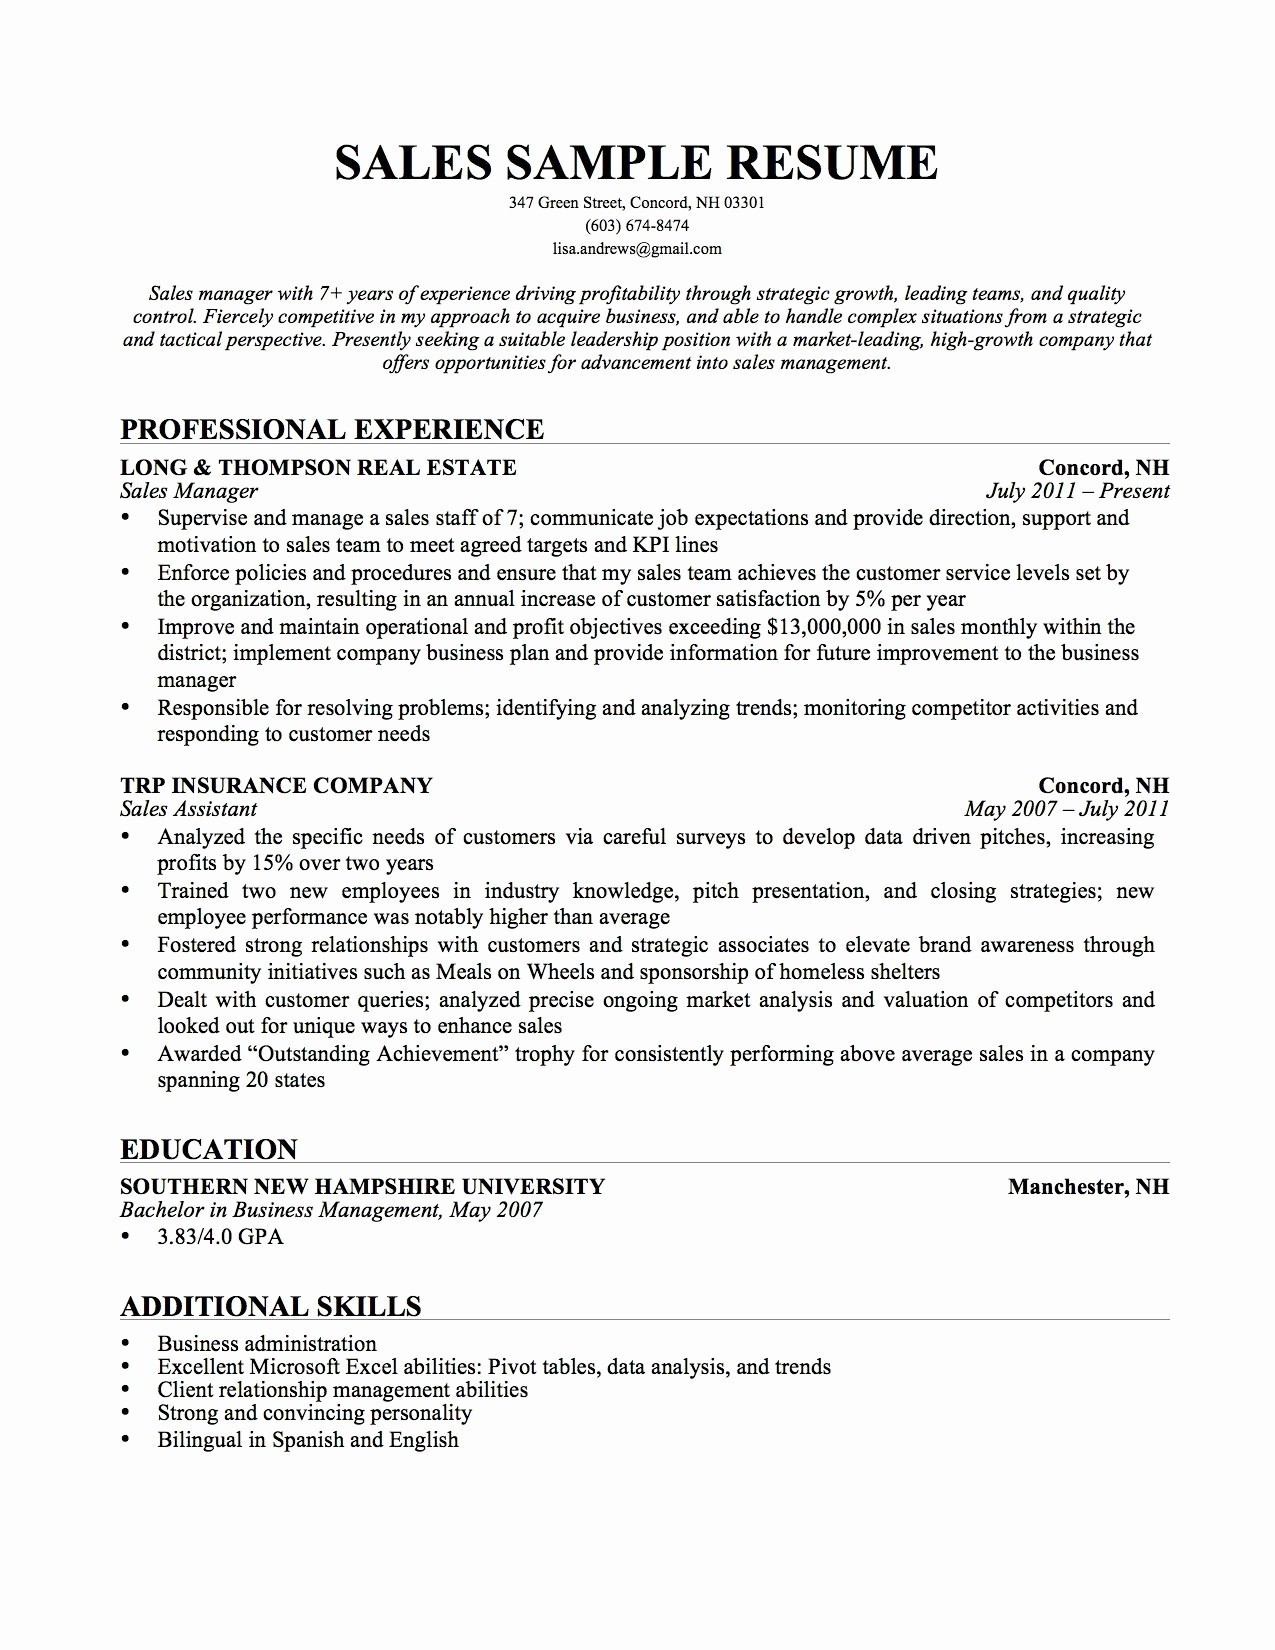 Data Analysis Resume - Skills Based Resume Inspirational Elegant Skills for A Resume